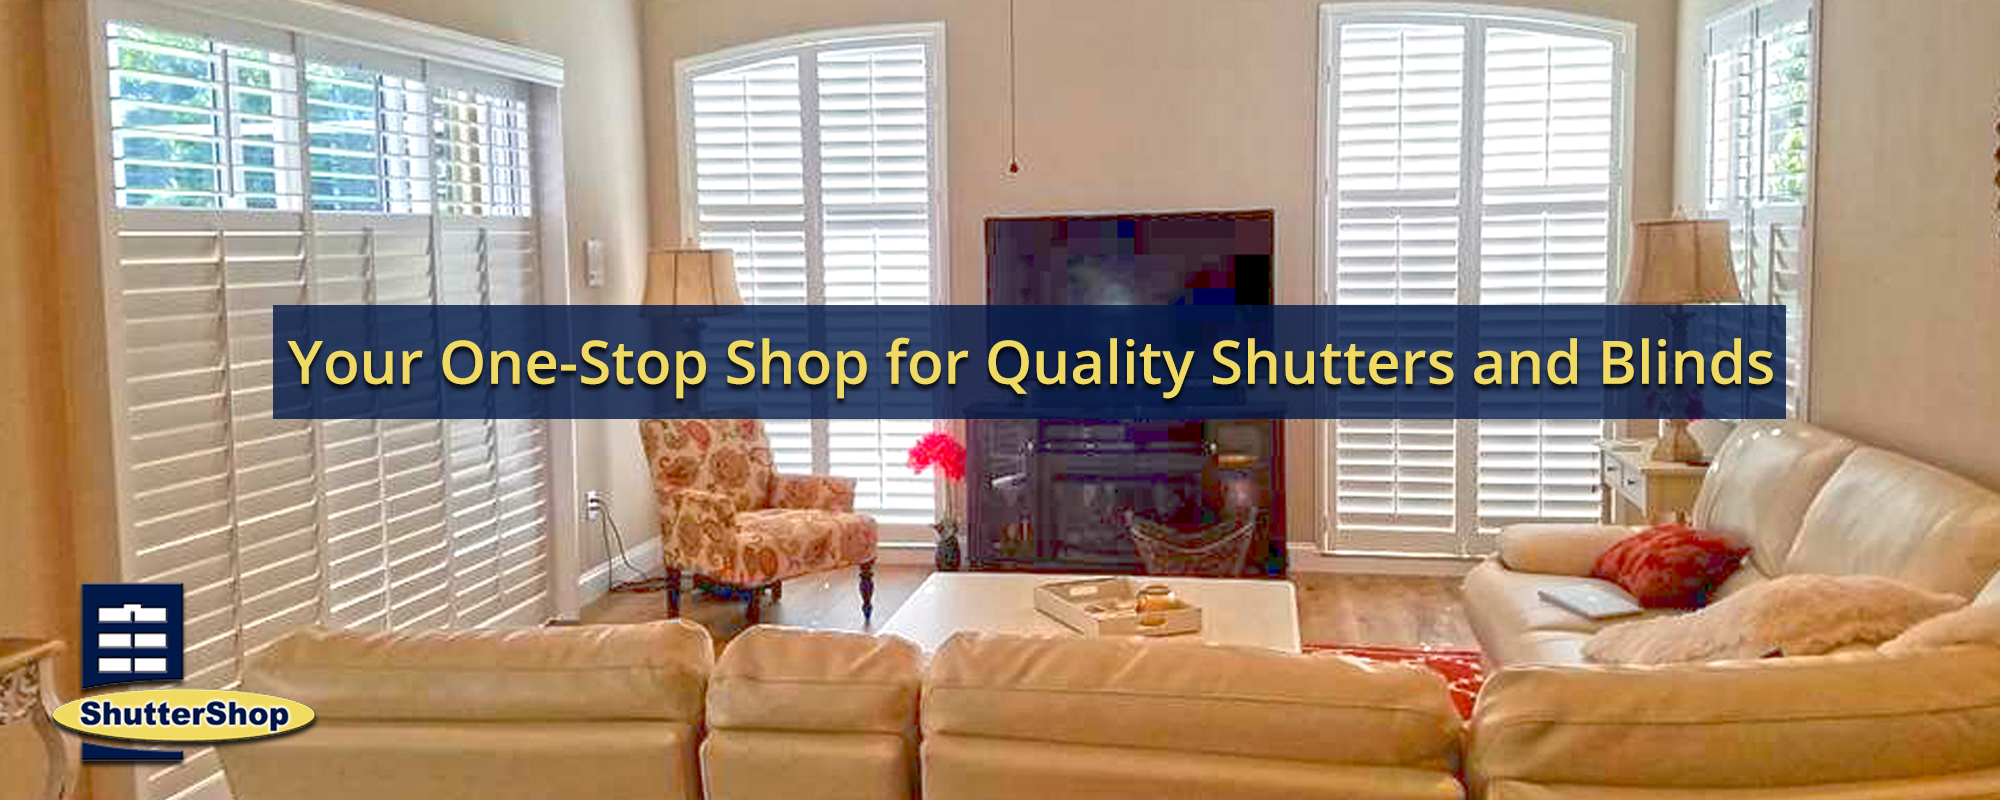 Window Treatments - Blinds, Shades and Shutters 005